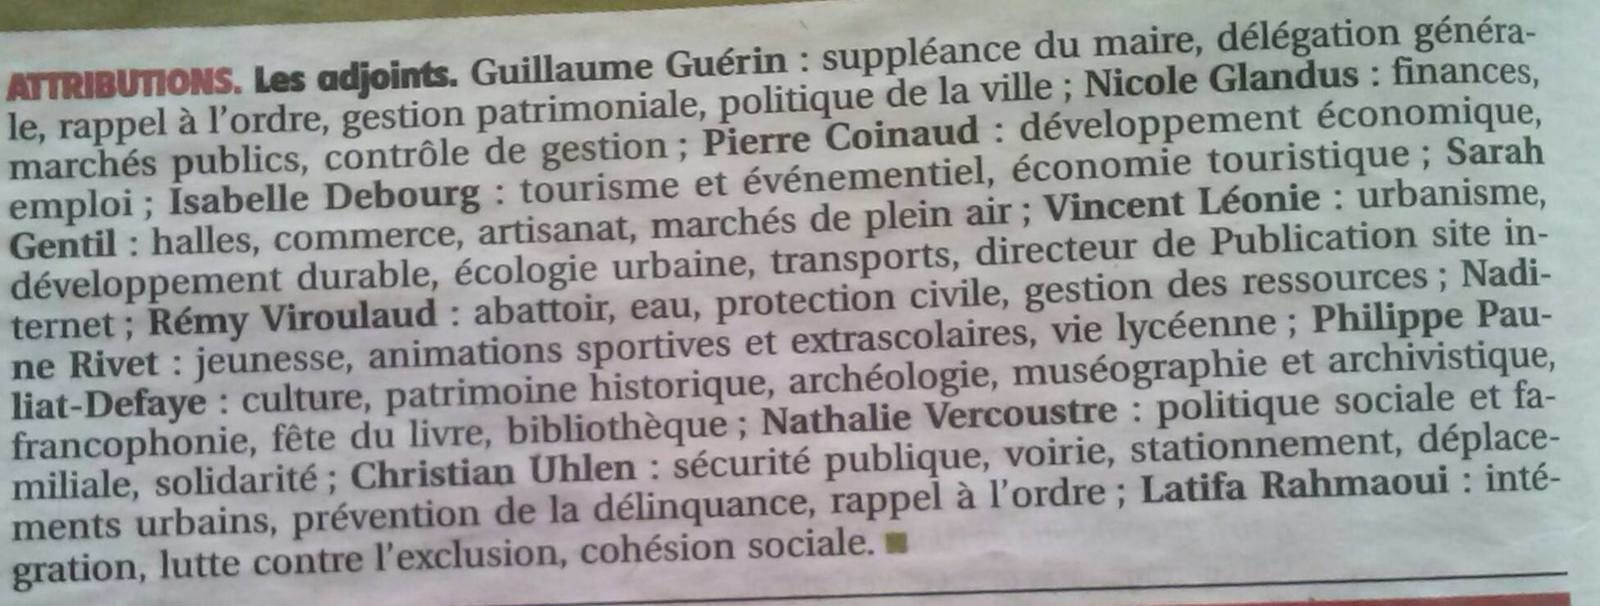 Attributions des adjoints, dommage...